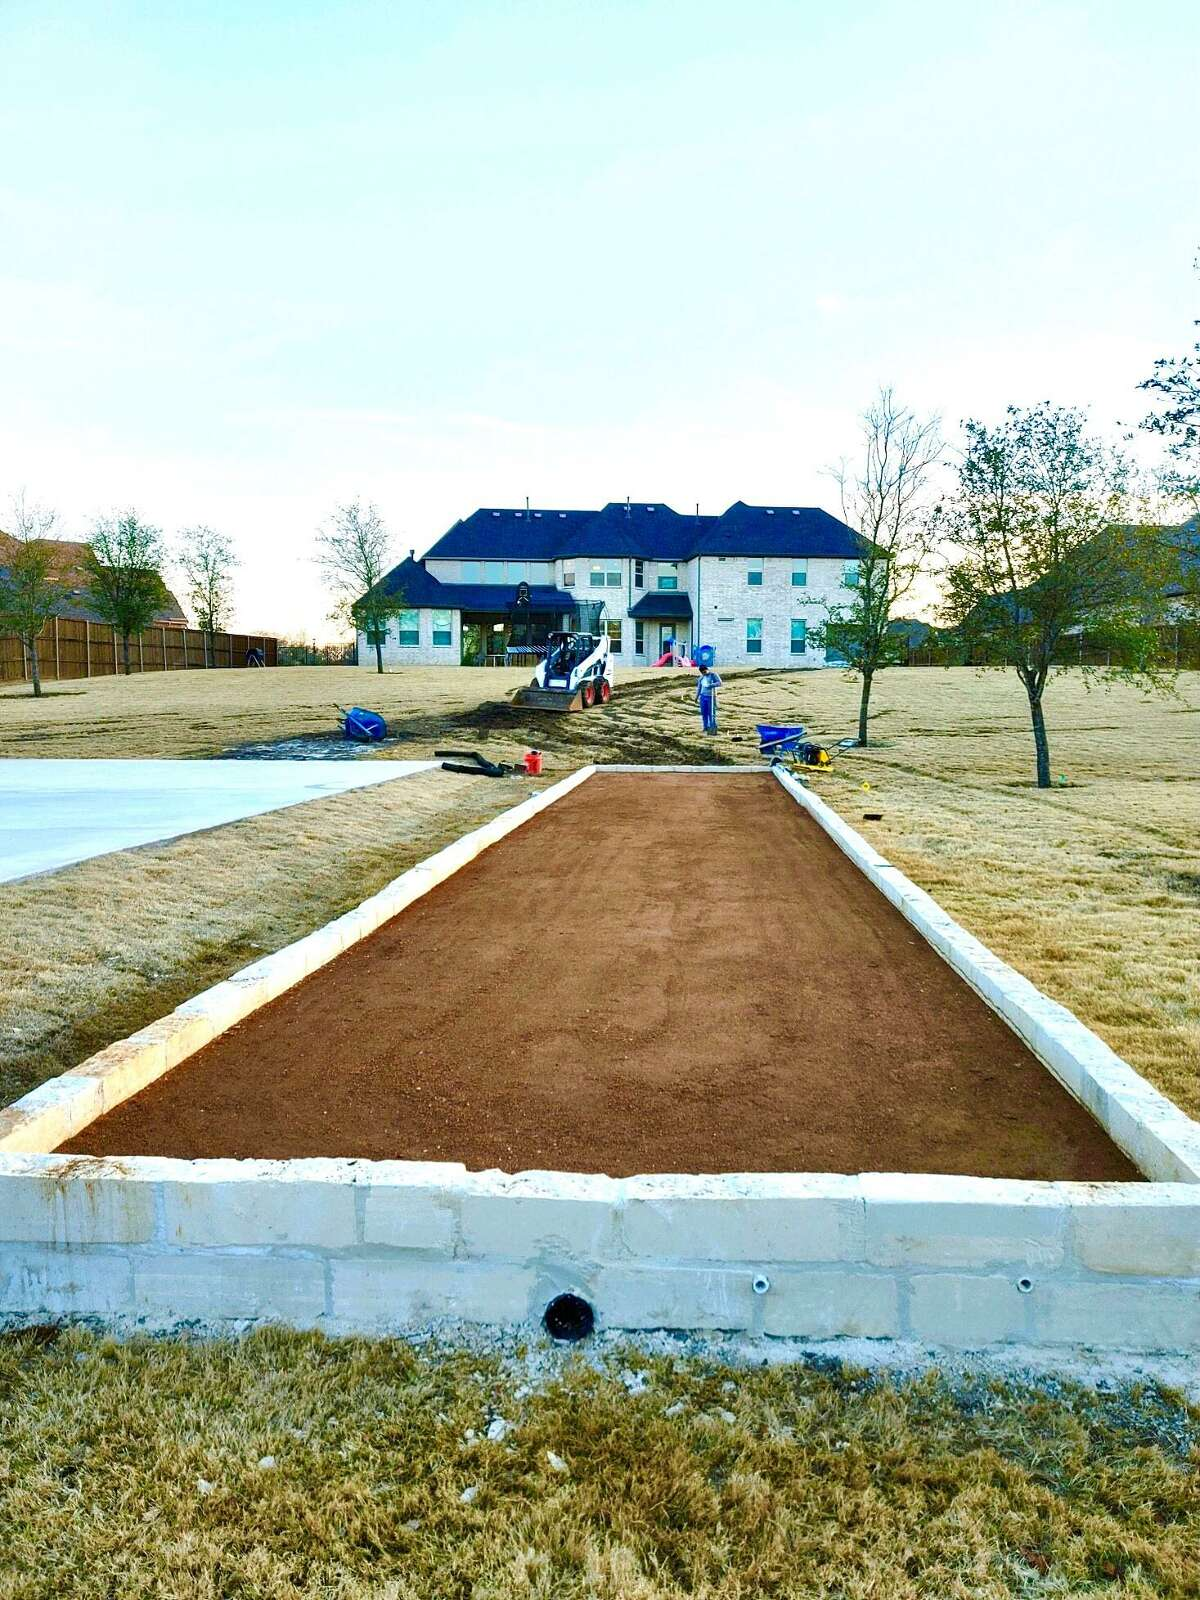 Chris Bailey's bocce court in the backyard of his Keller home has a crushed granite surface and limestone block edging. Bailey said he plays bocce two to three times a week.